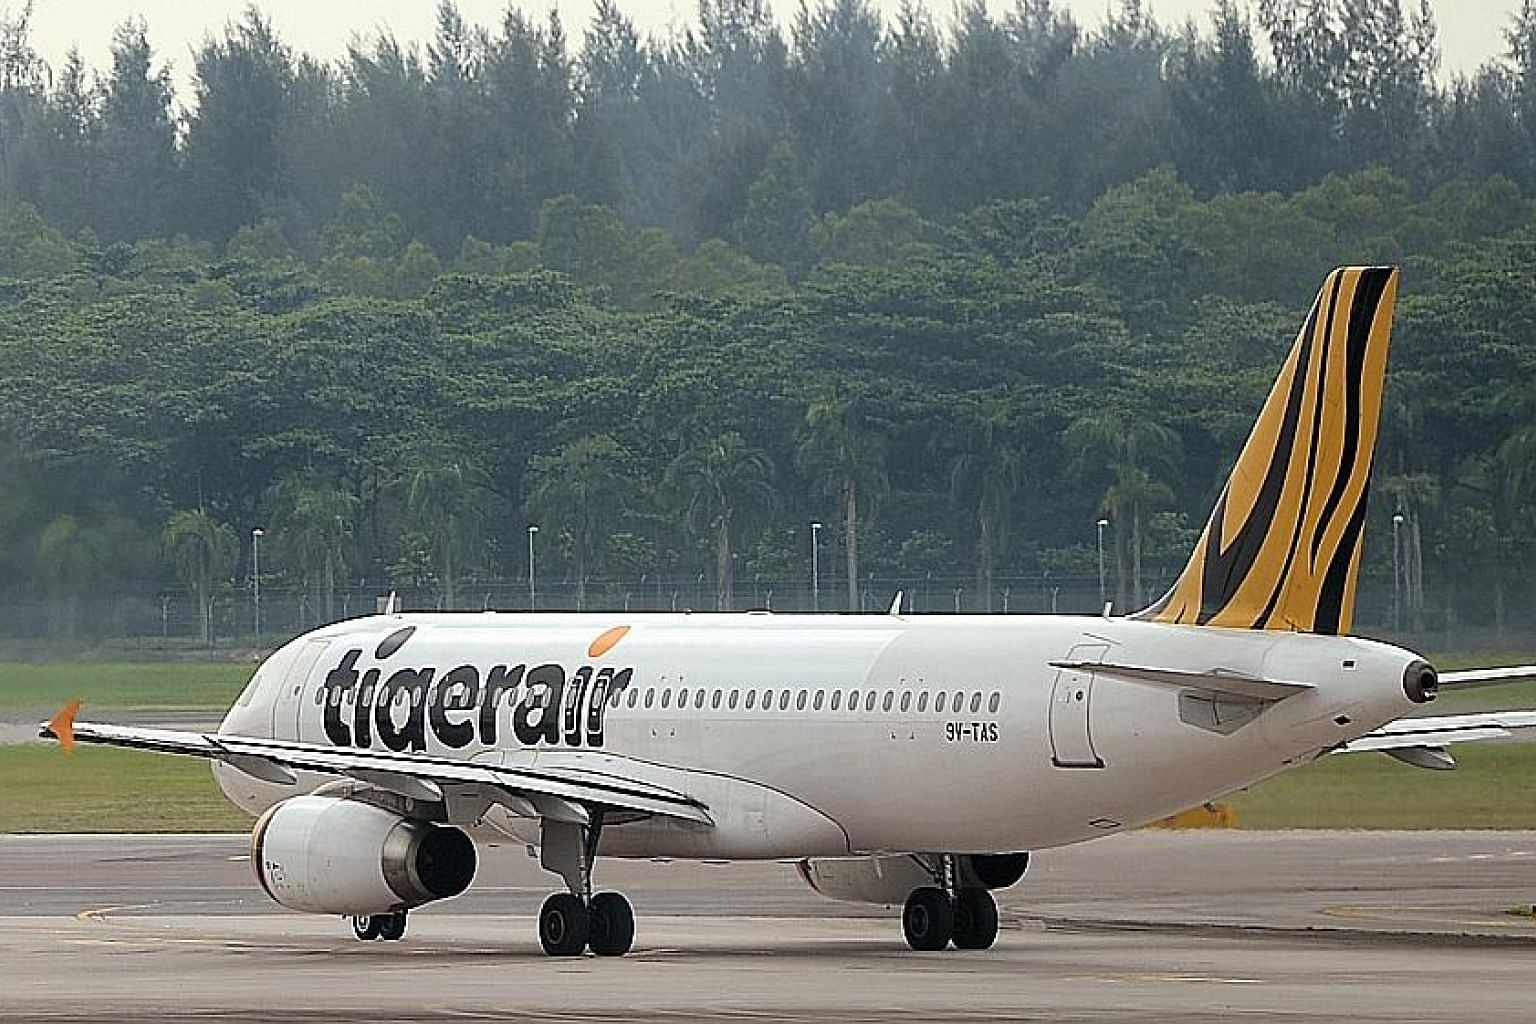 Budget carrier Tigerair posted better revenues off an improvement in yields and load factors.